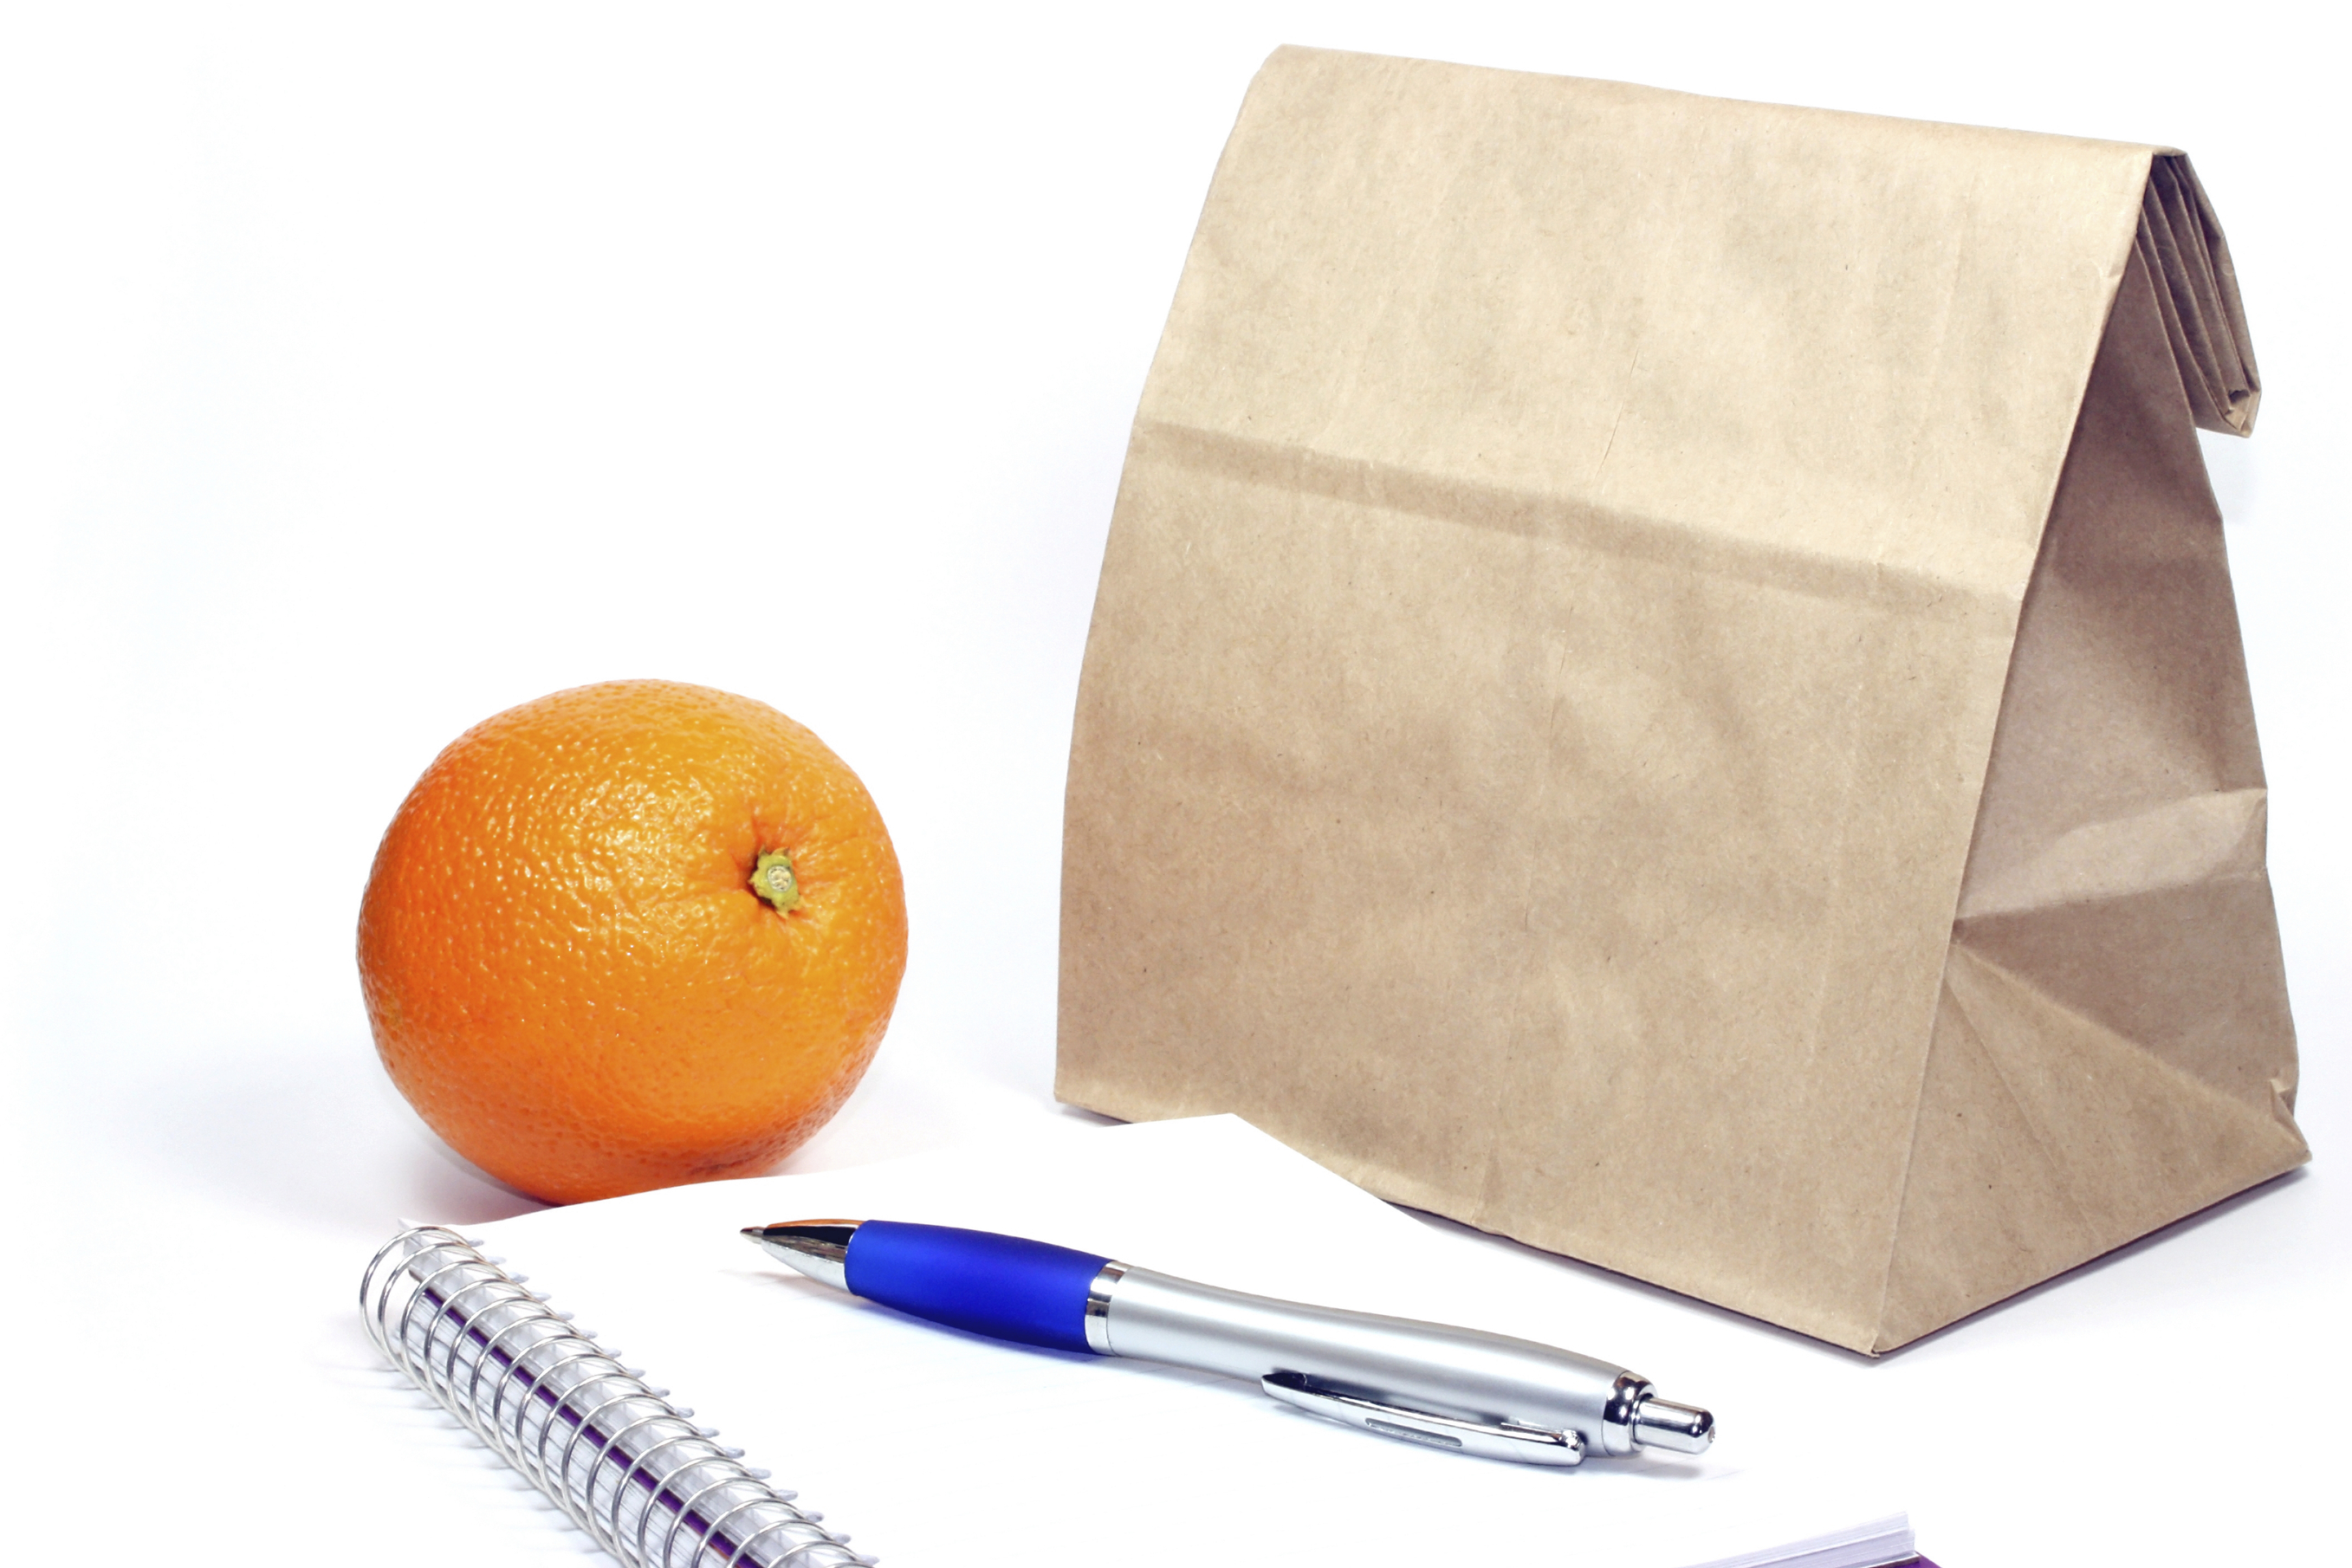 Brown bag, notebook, pen and orange